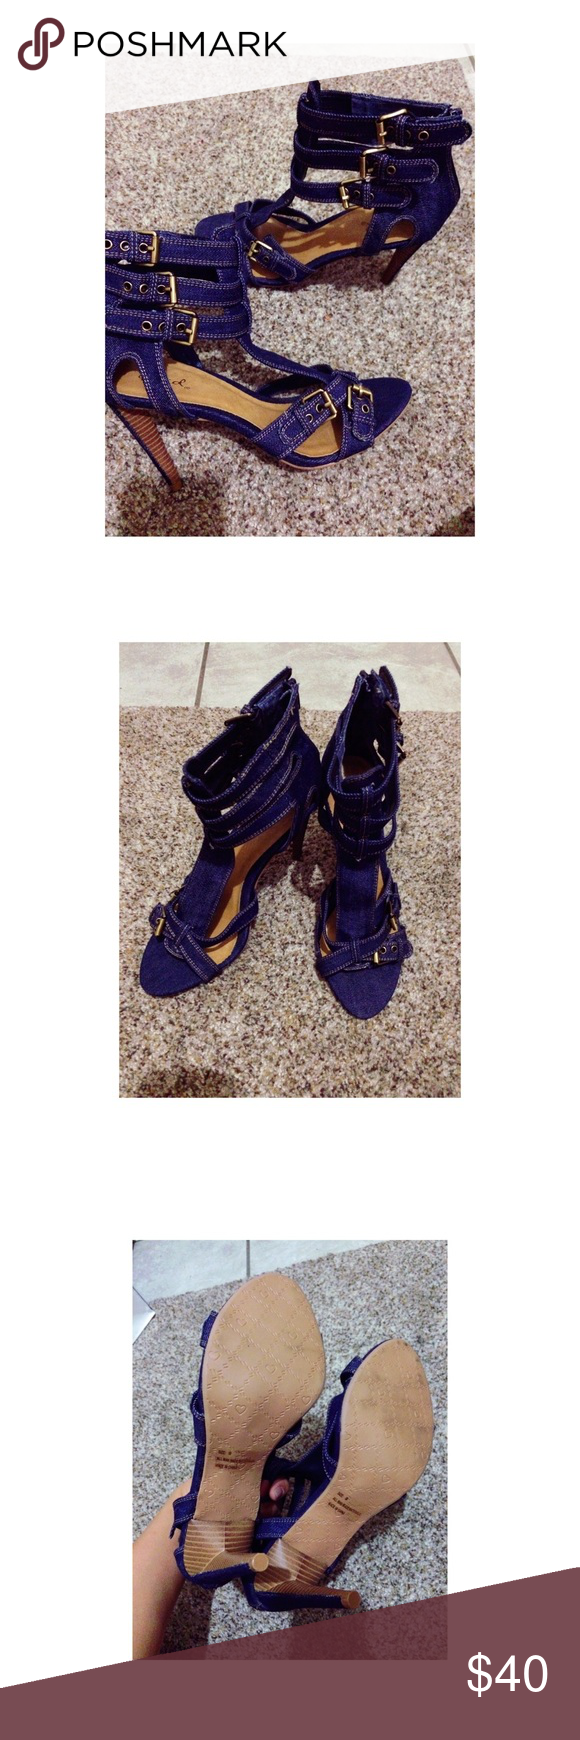 Buckled strappy Heels About 4 inches (not listed brand) only used once can fit sizes 9-10. Denim Material with bronzed buckles! 💕 perfect with jeans Zara Shoes Heels